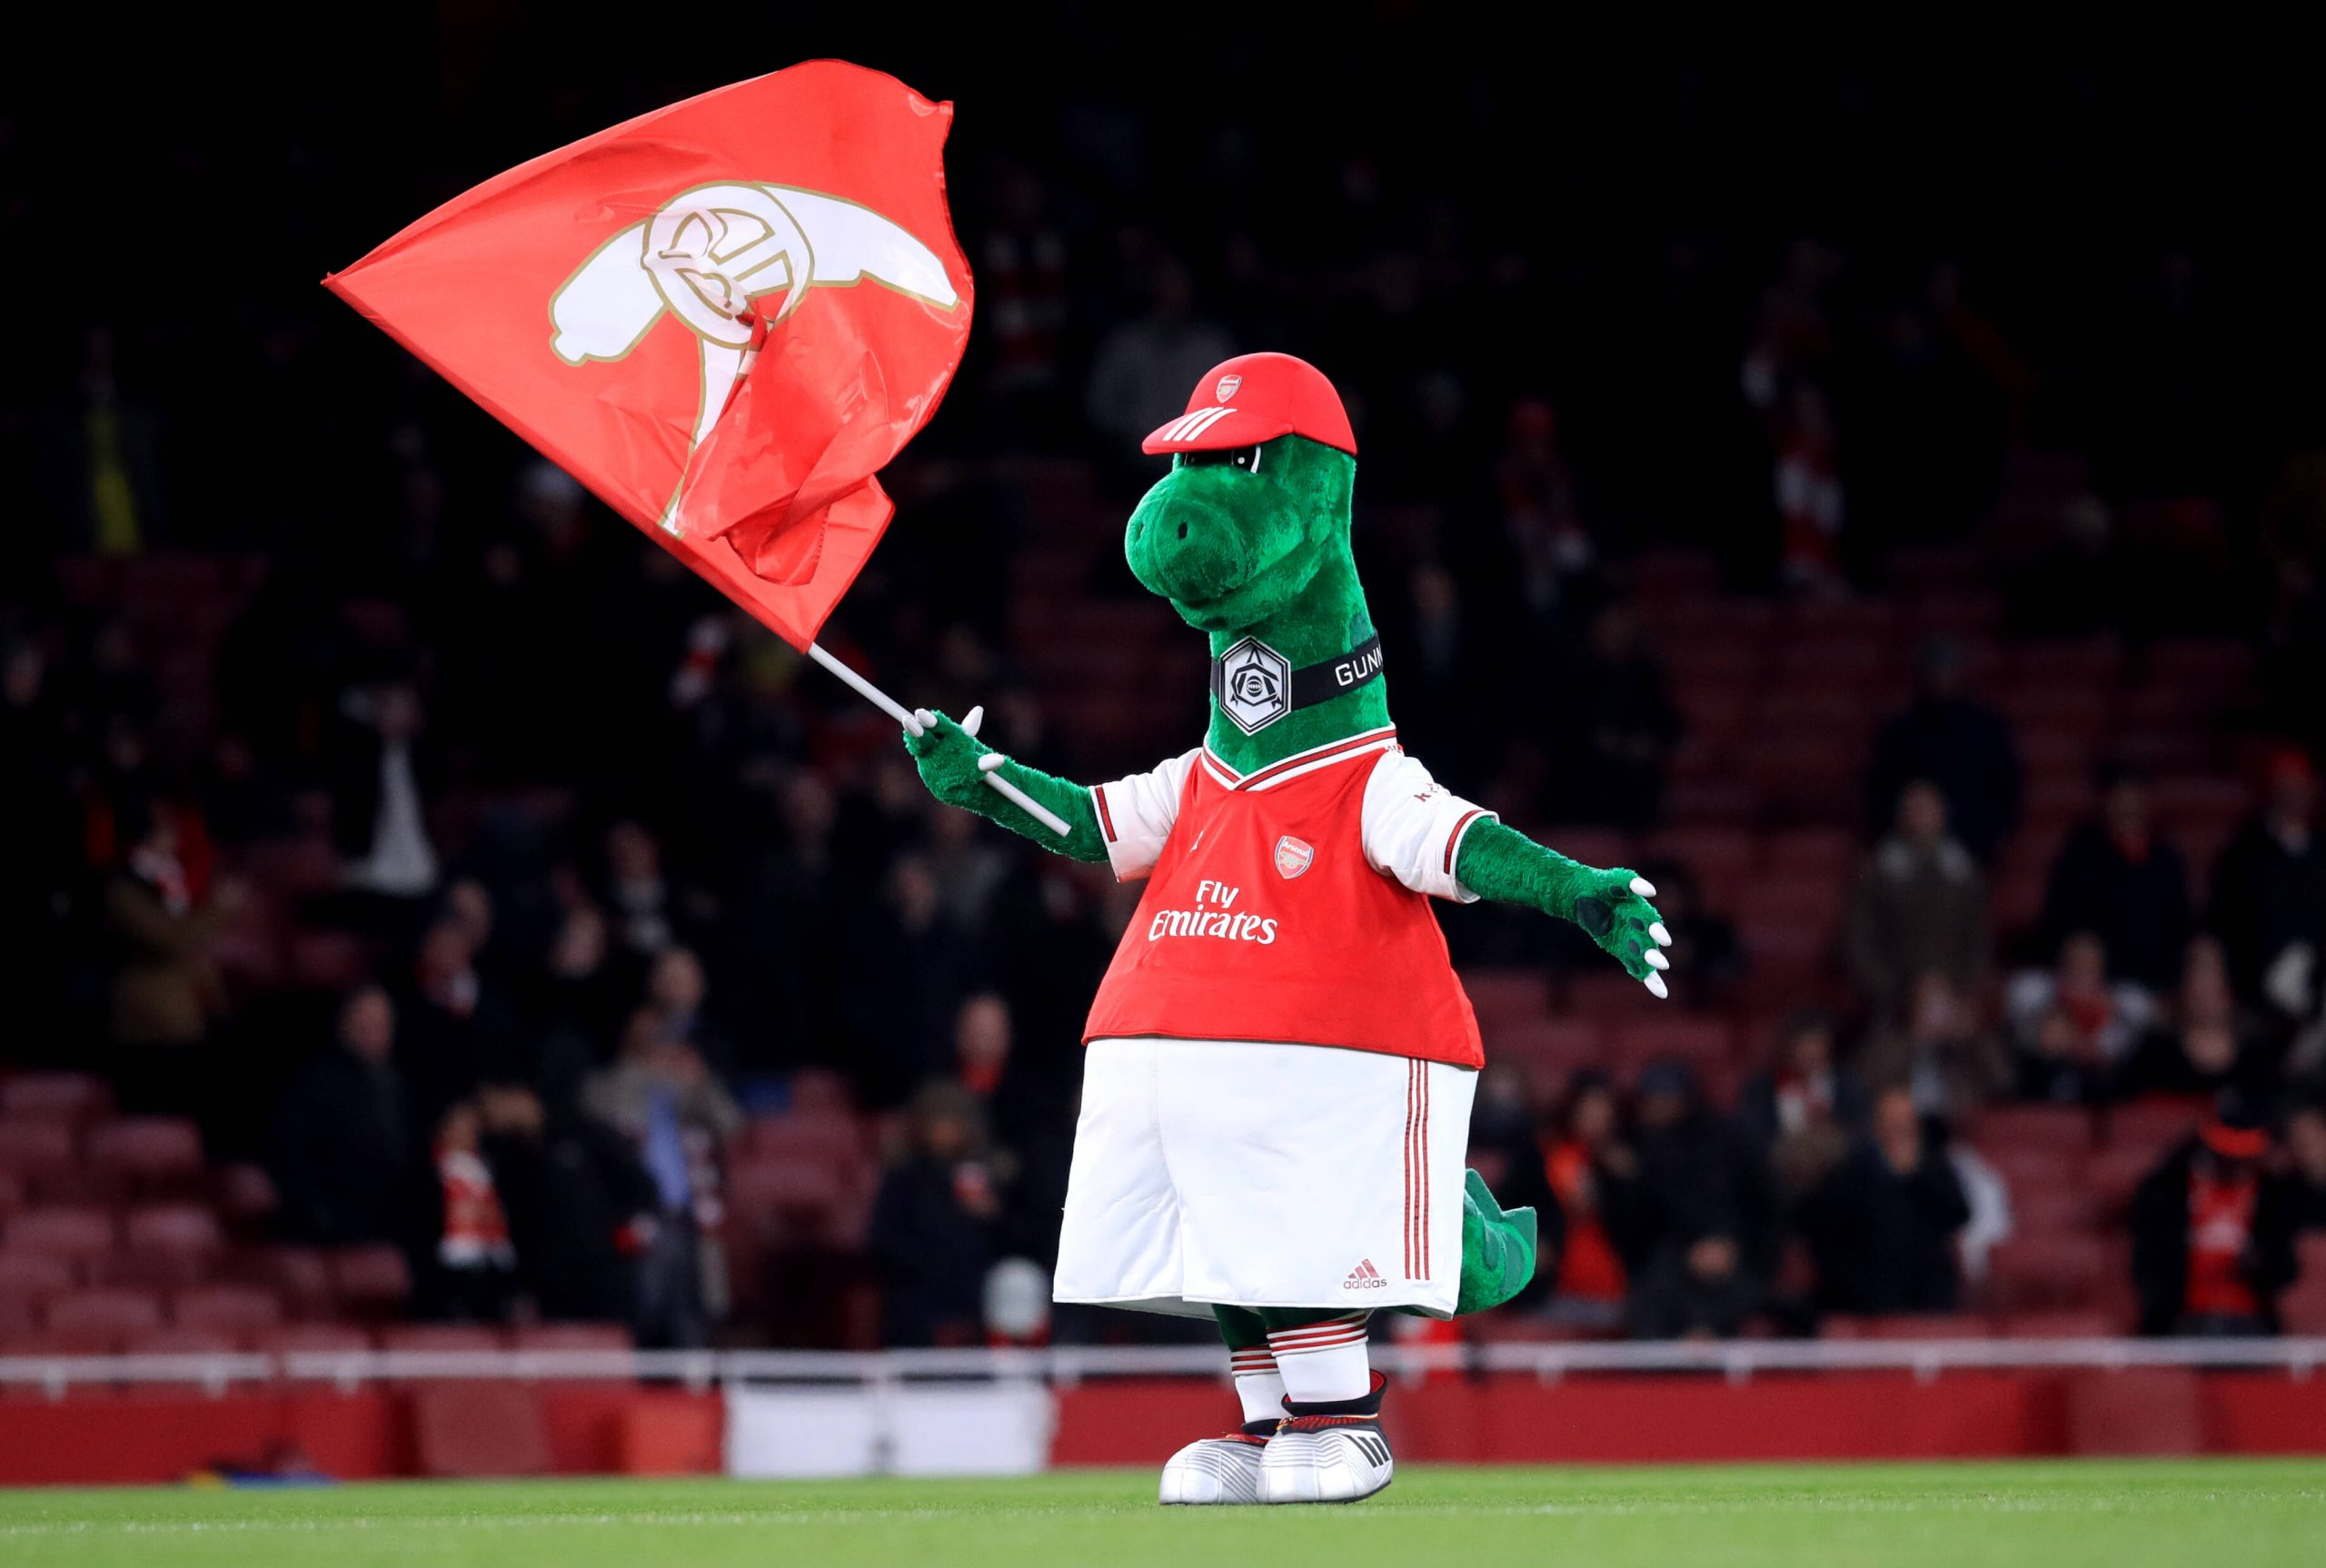 Mesut Ozil wants to save Arsenal mascot Gunnersaurus by paying wages